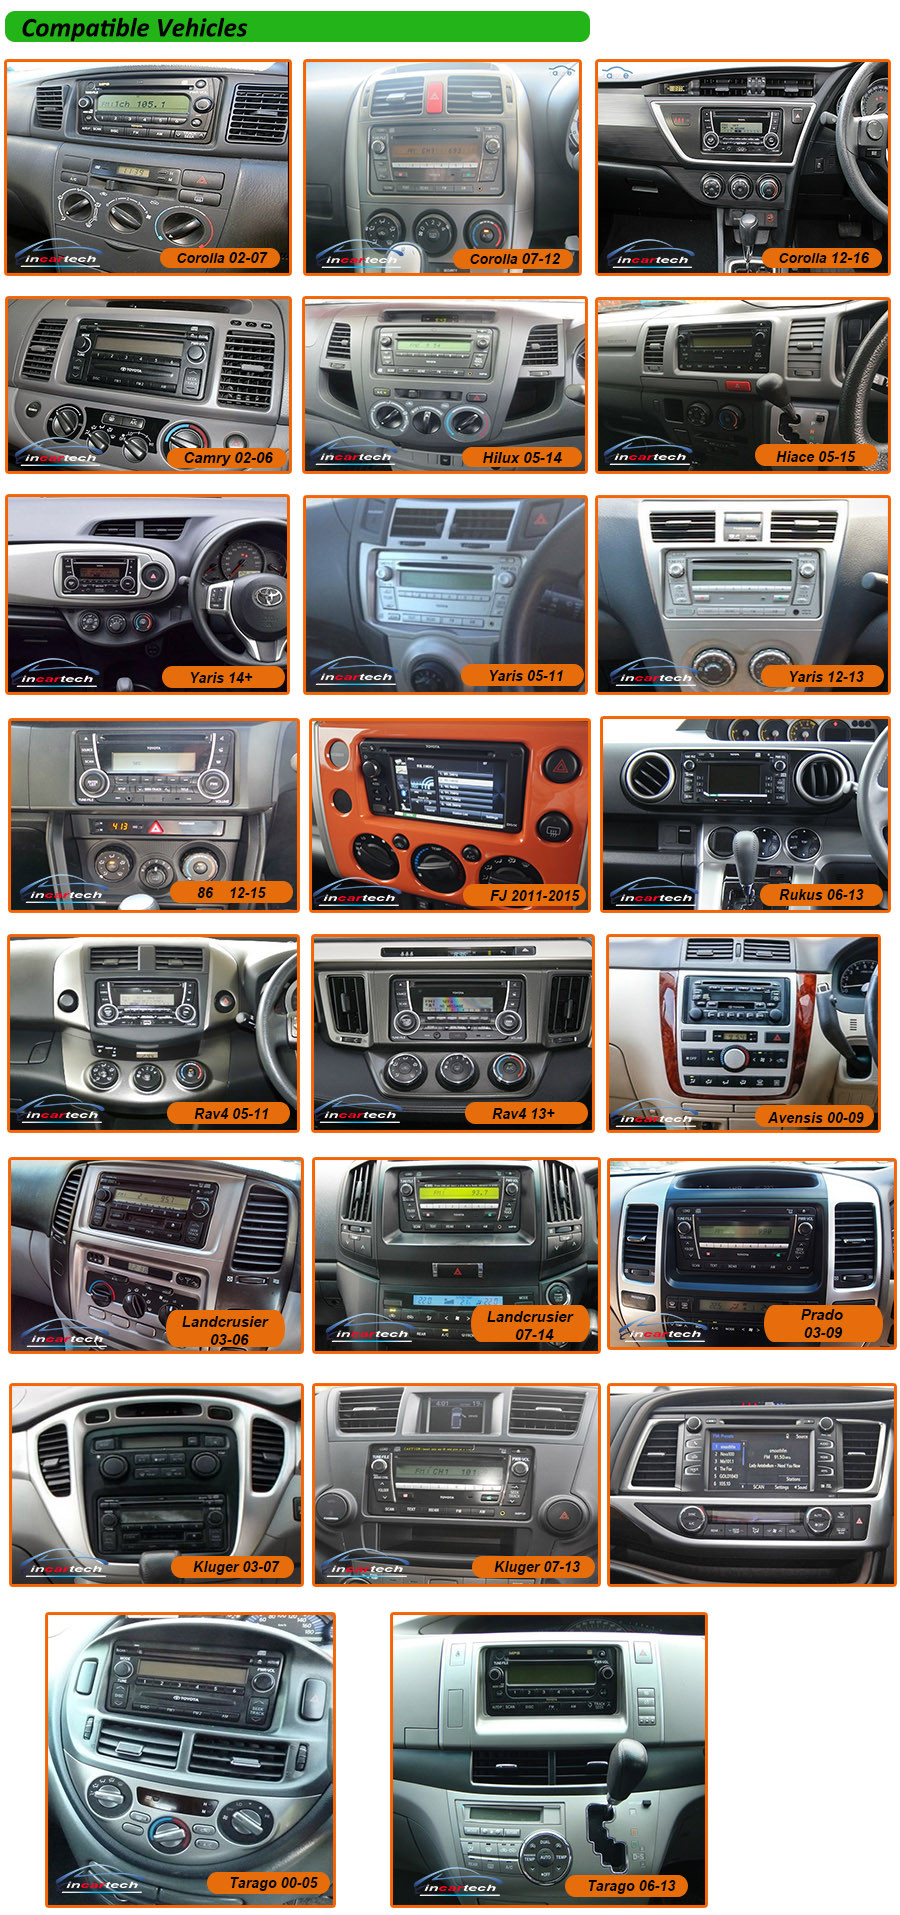 Toyota kluger 03 14 head unit gps sat nav car radio stereo dvd check out our installation job in sydney fandeluxe Images